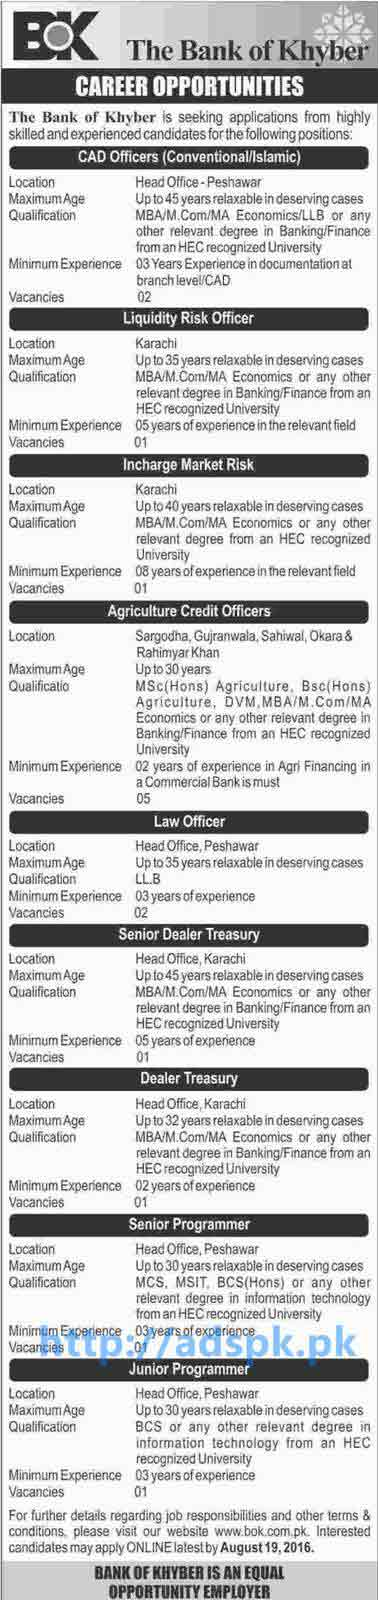 New Career Jobs Bank of Khyber Pakistan Jobs for CAD Officers Liquidity Risk Officer Incharge Market Risk Agriculture Credit Officers Law Officer Application Deadline 19-08-2016 Apply Online Now